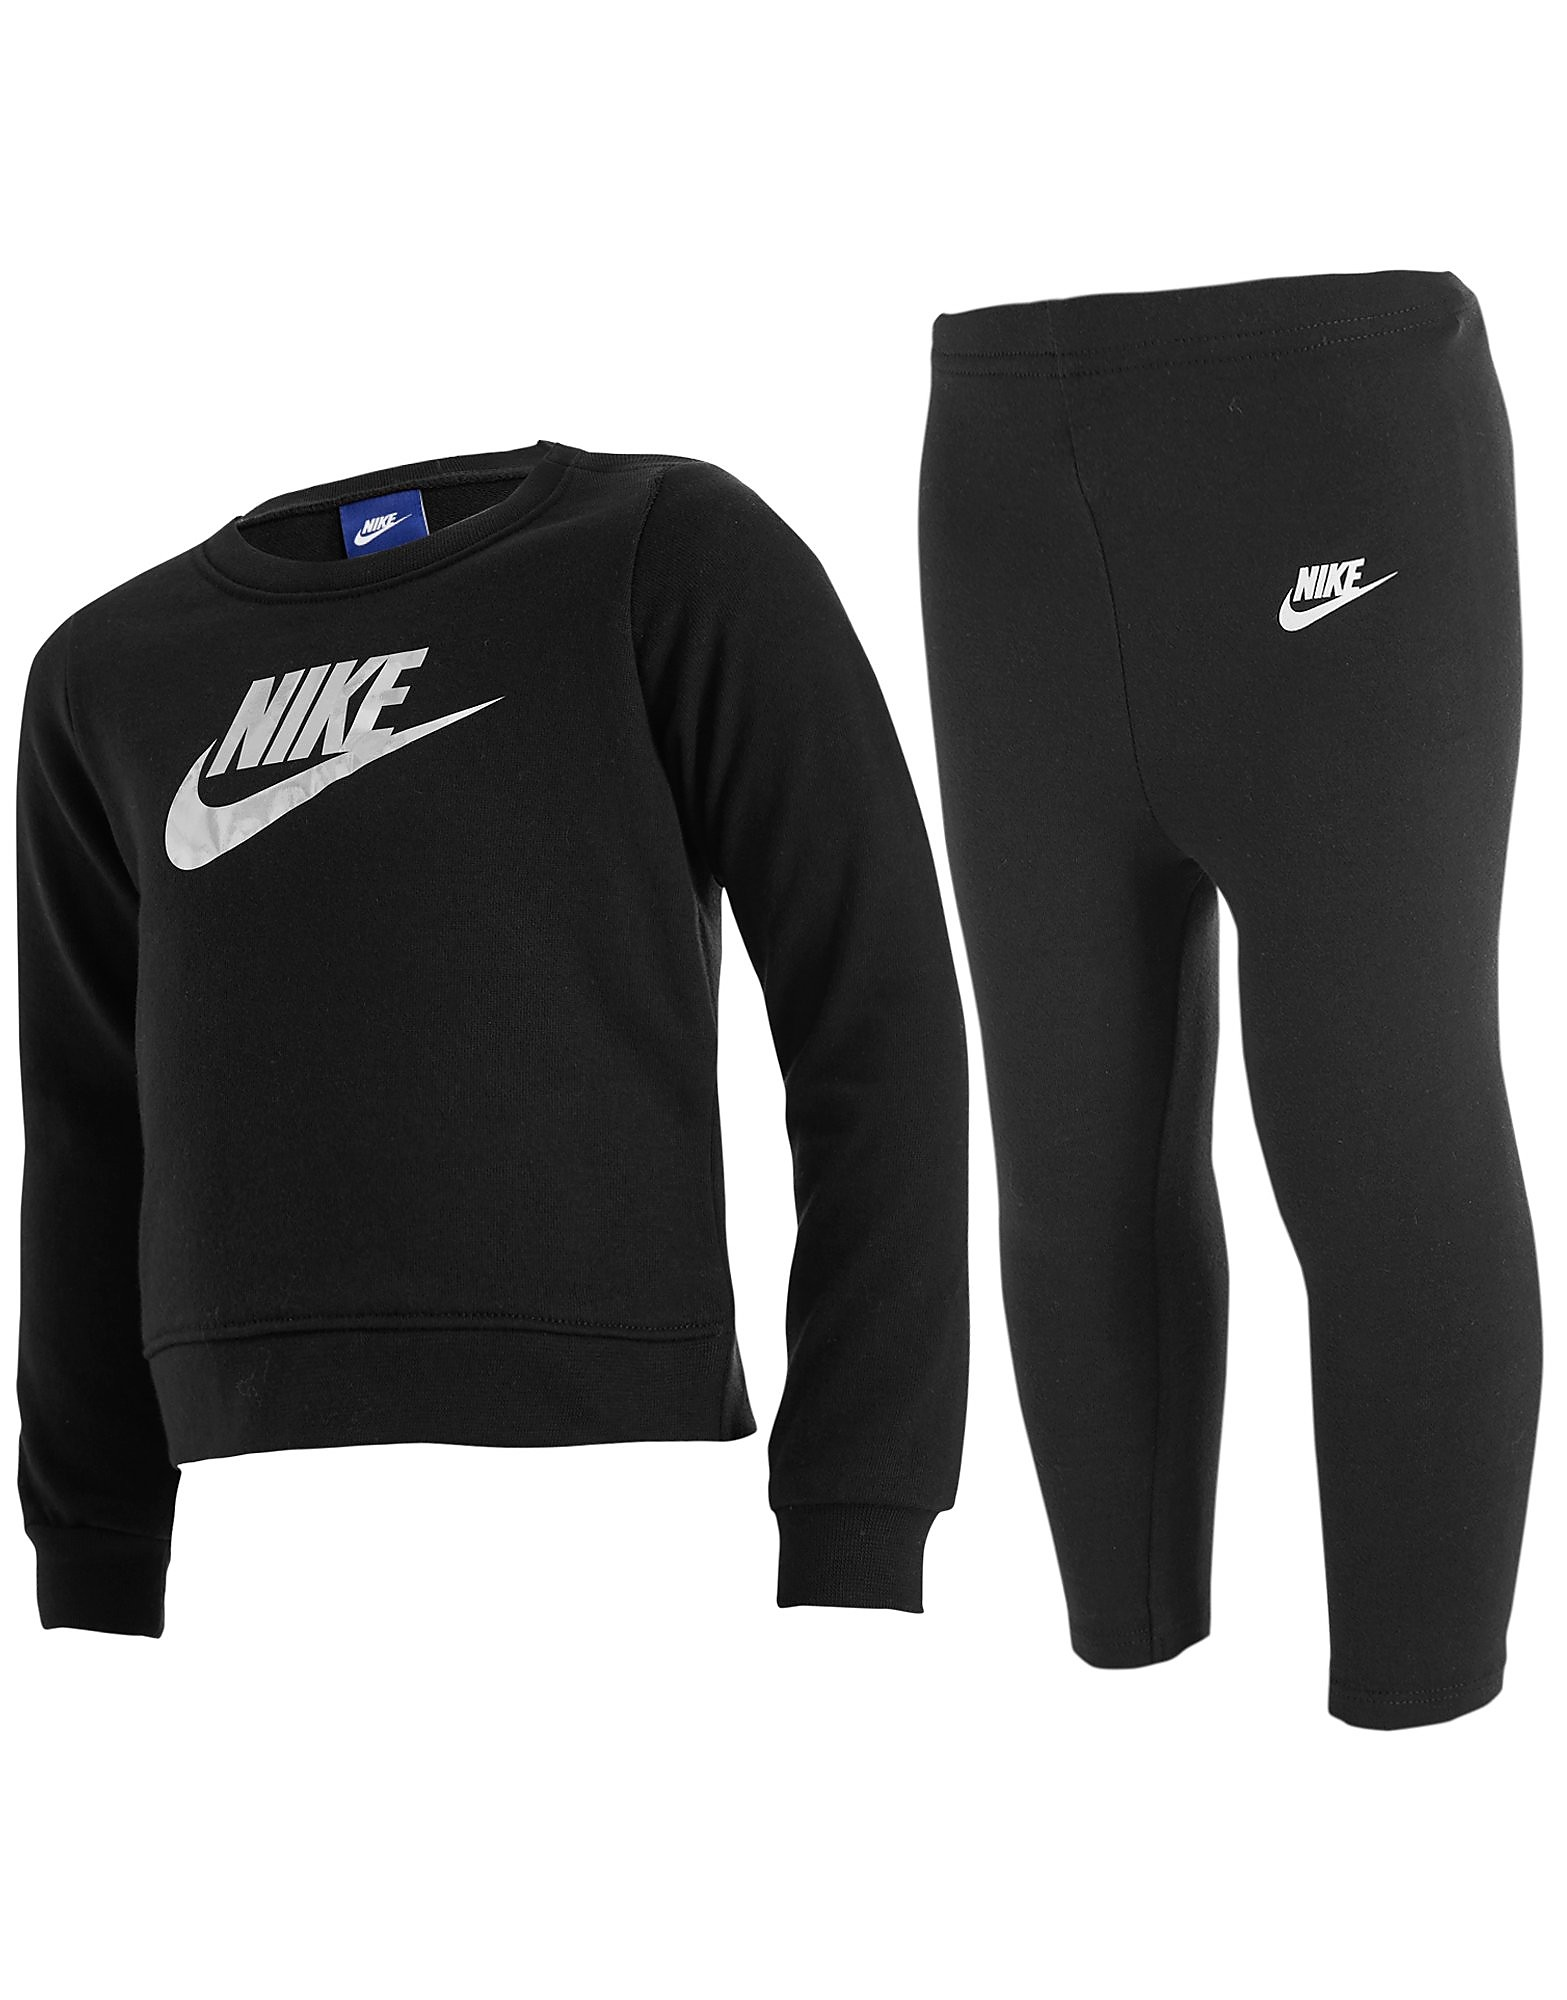 Nike Girls Crew/Leggings Set Infant